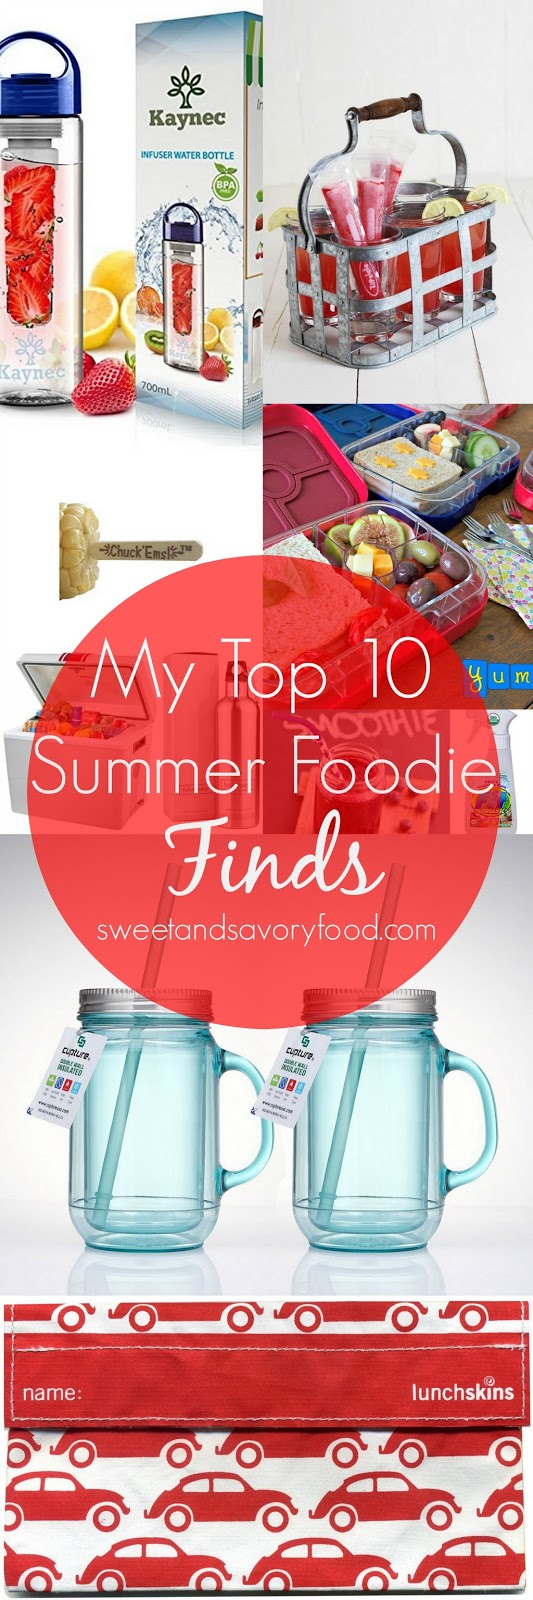 top 10 summer foodie finds (sweetandsavoryfood.com)